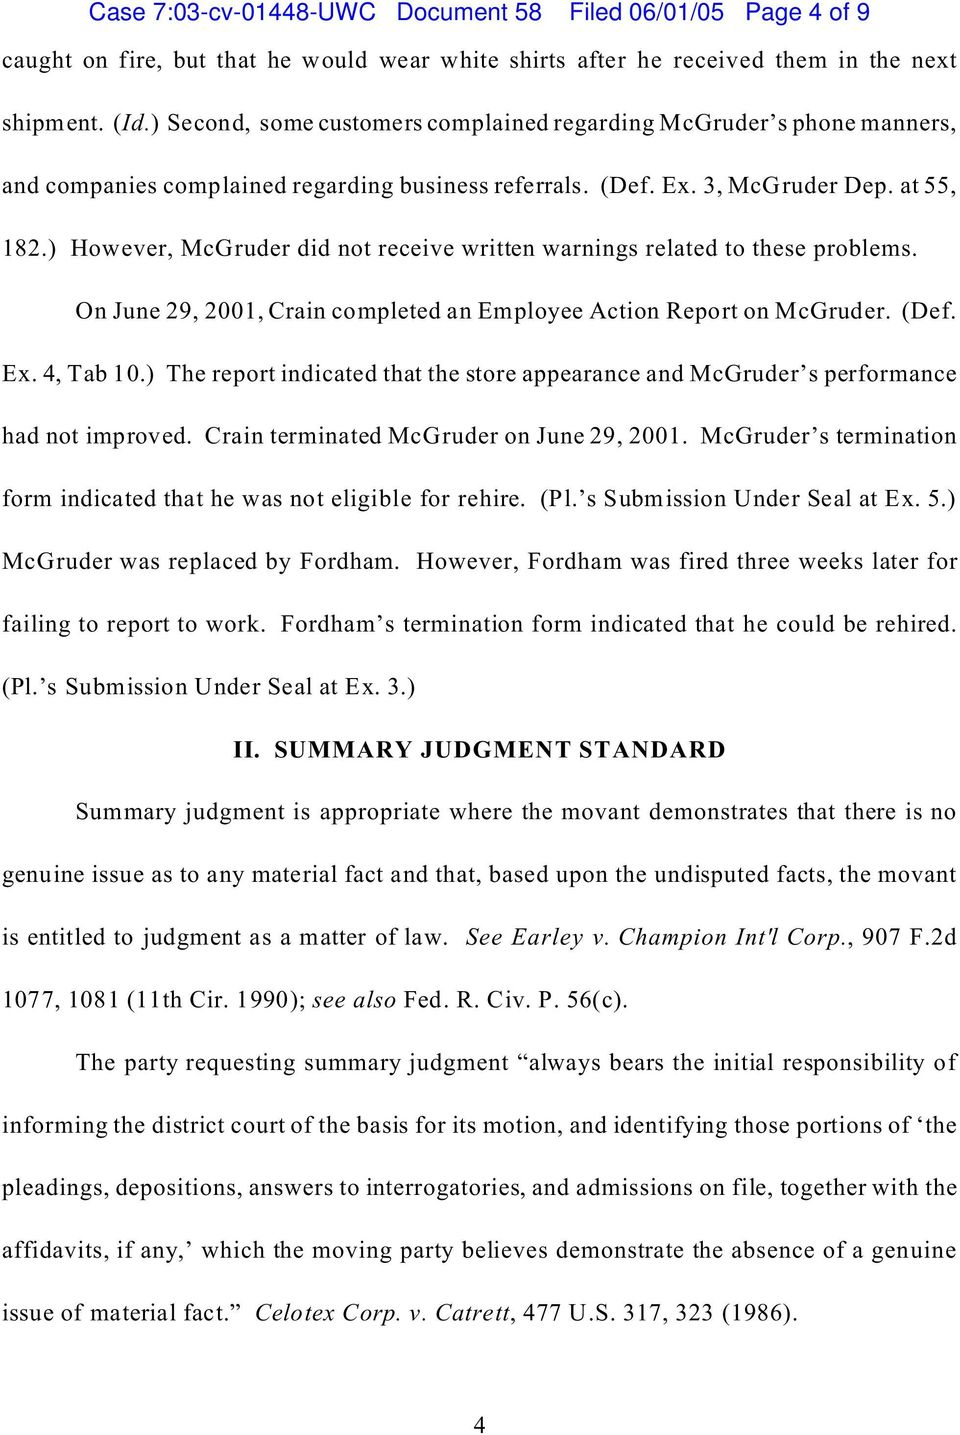 ) However, McGruder did not receive written warnings related to these problems. On June 29, 2001, Crain completed an Employee Action Report on McGruder. (Def. Ex. 4, Tab 10.